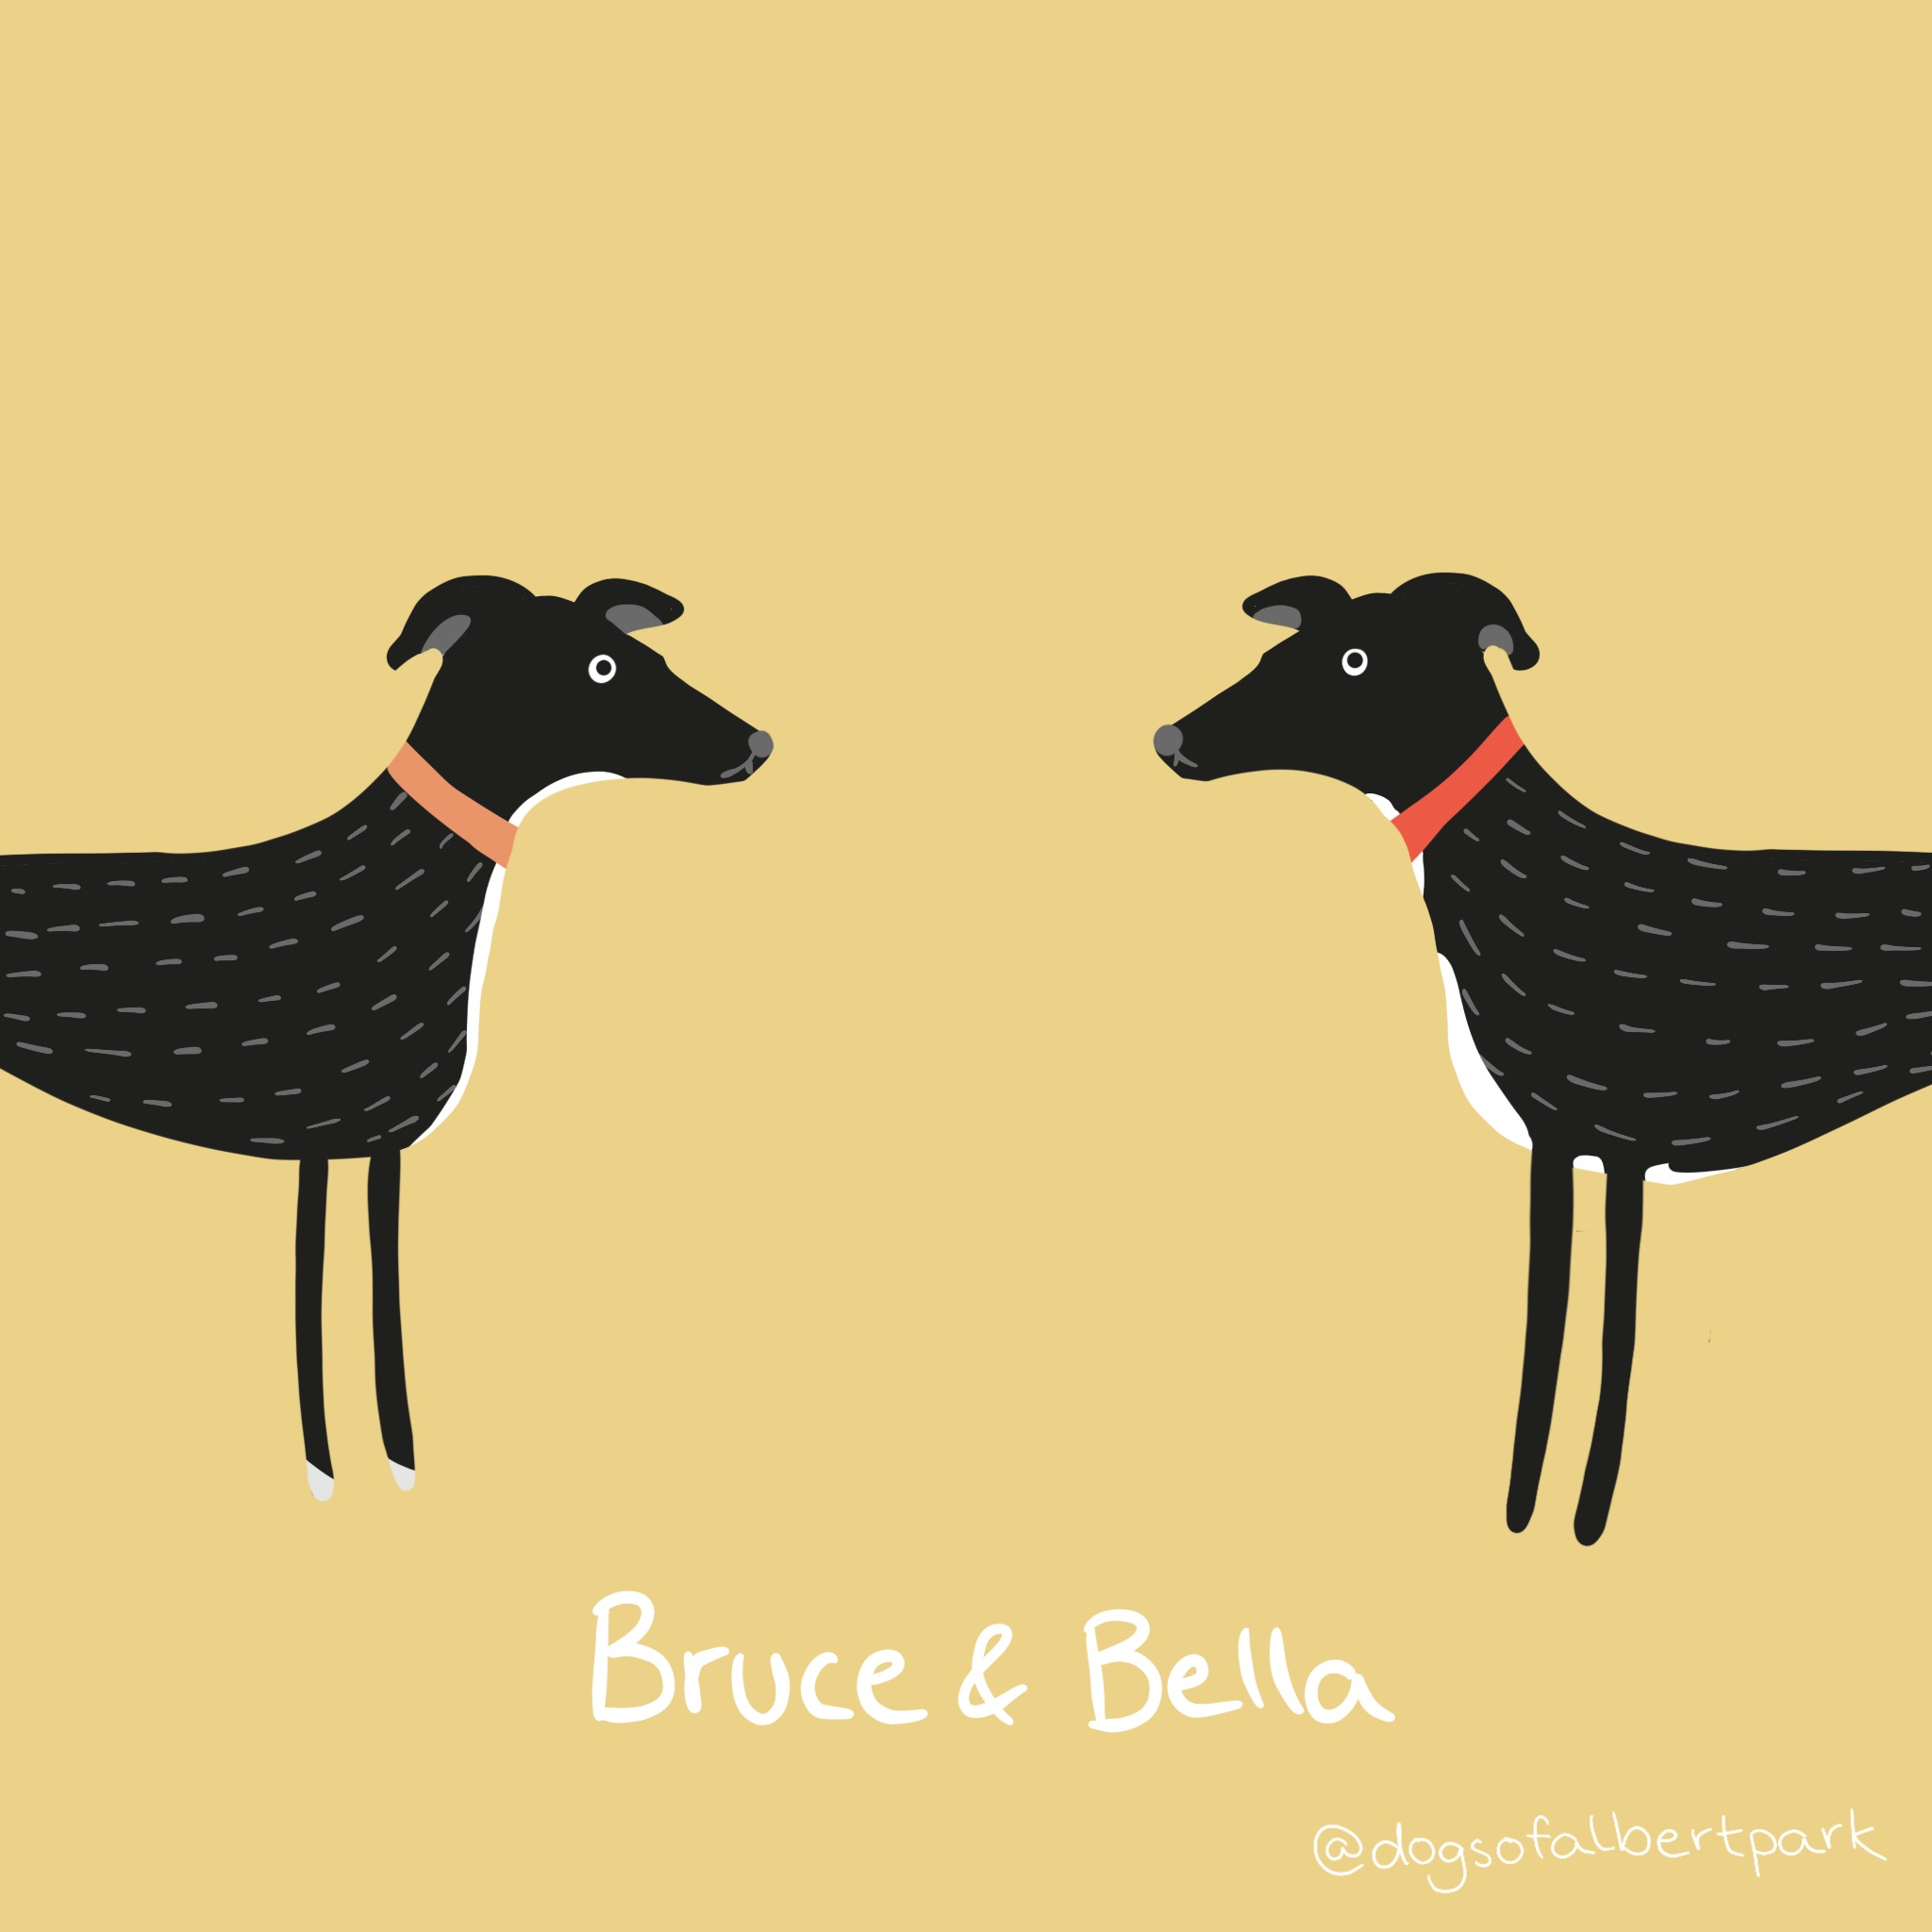 Greyhounds Bruce and Bella